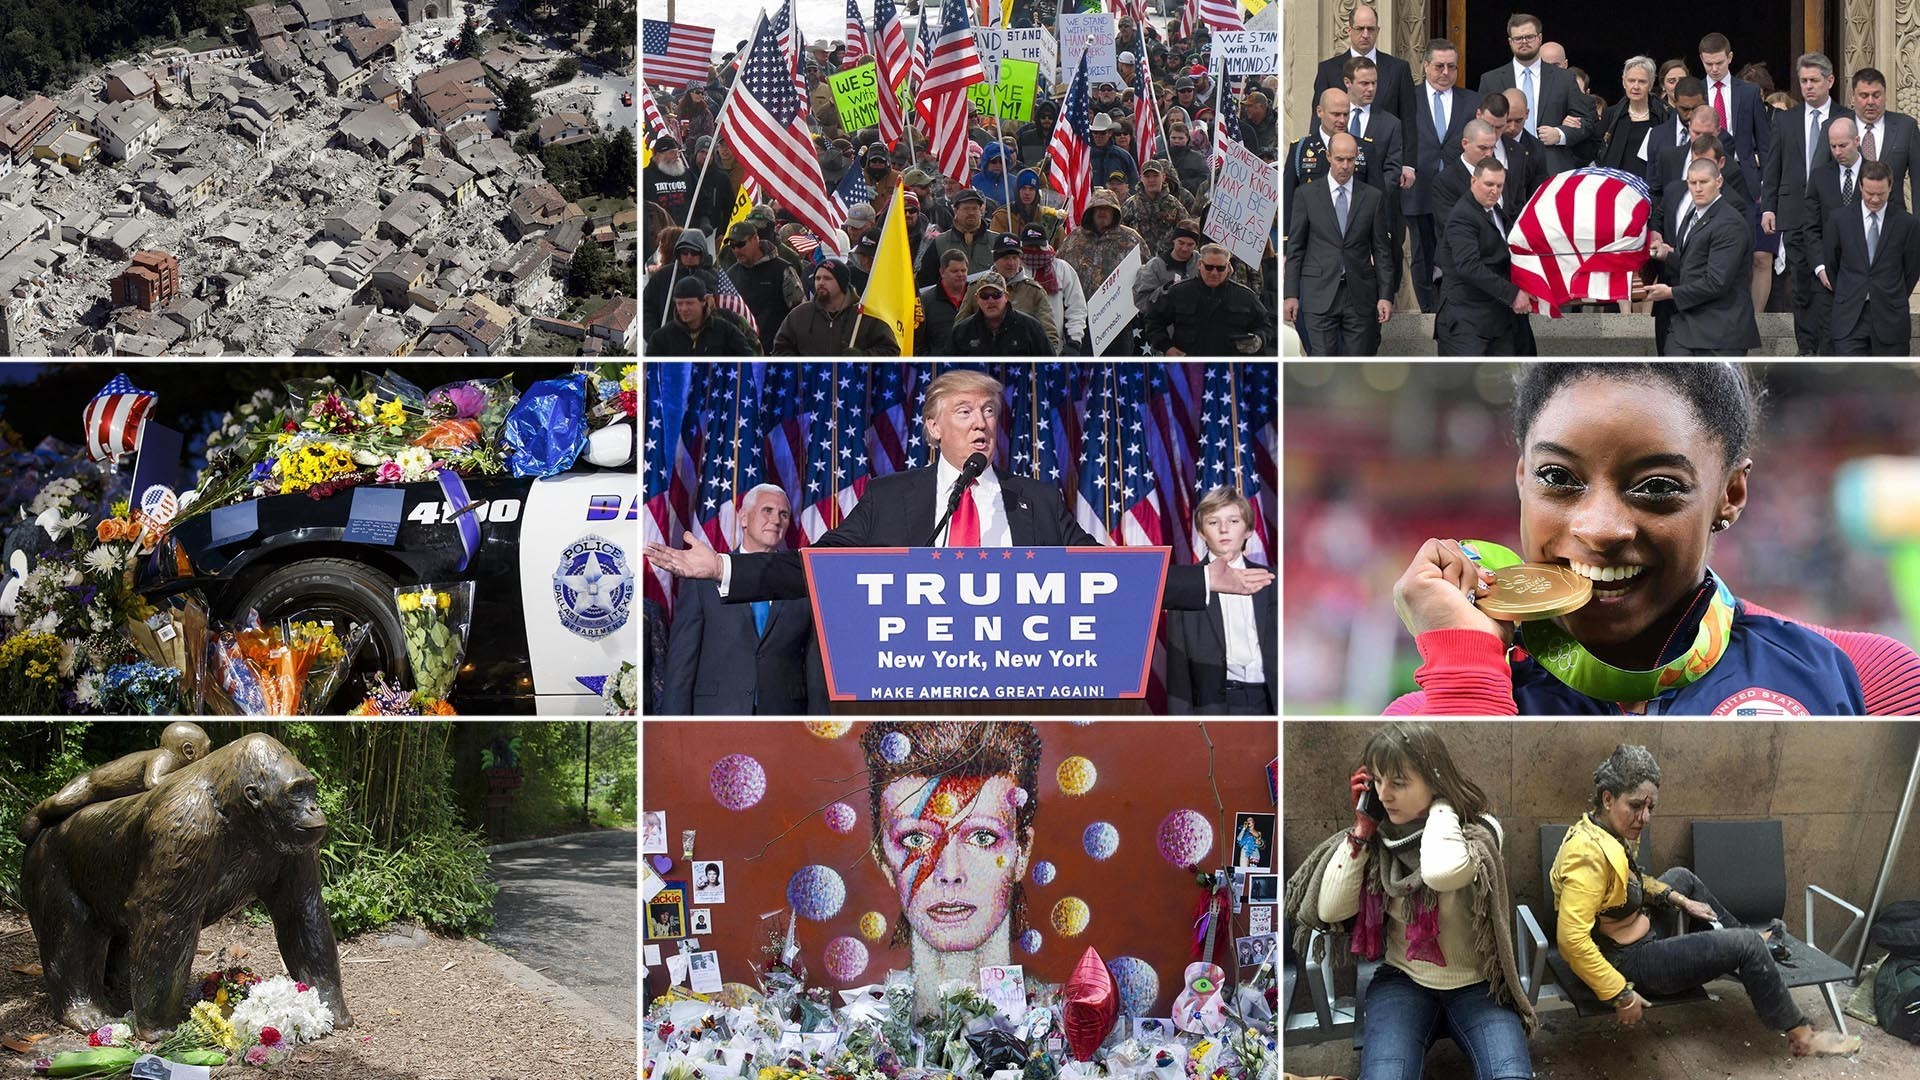 Year in review: Top stories of 2016